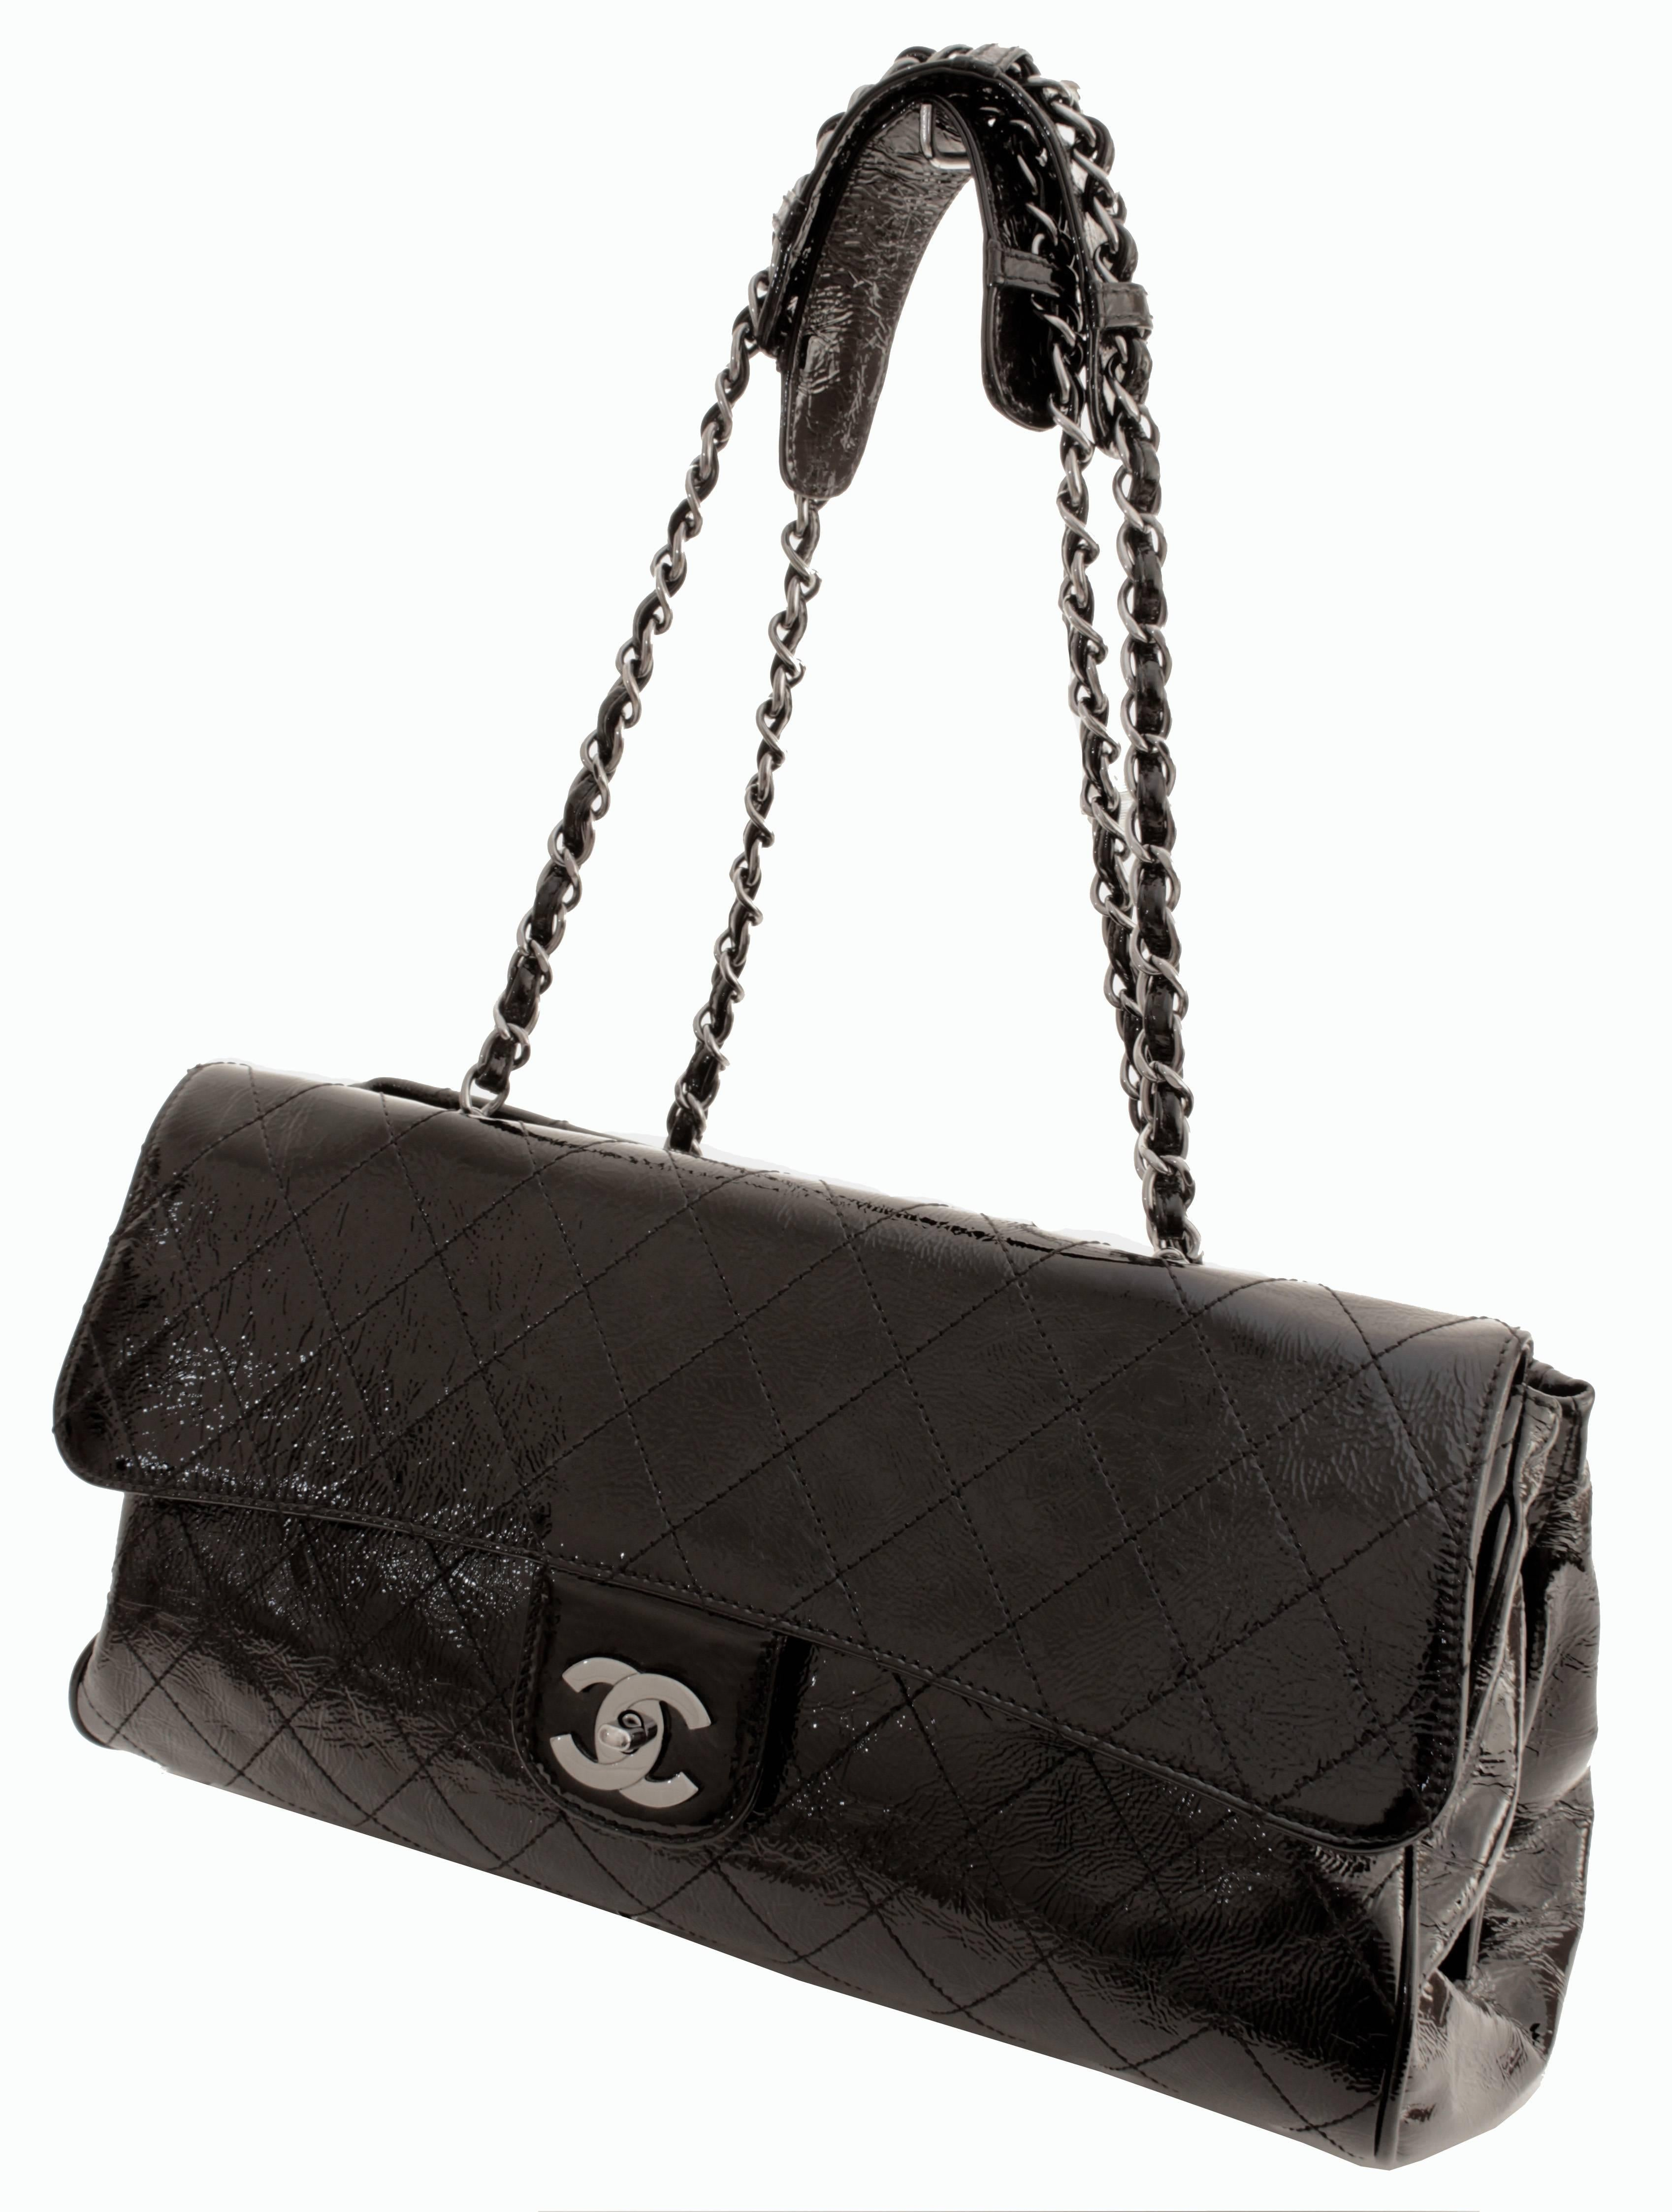 61cce24a0254 Chanel Ritz Shoulder Bag Convertible Clutch Black Matelasse Patent Leather  For Sale at 1stdibs